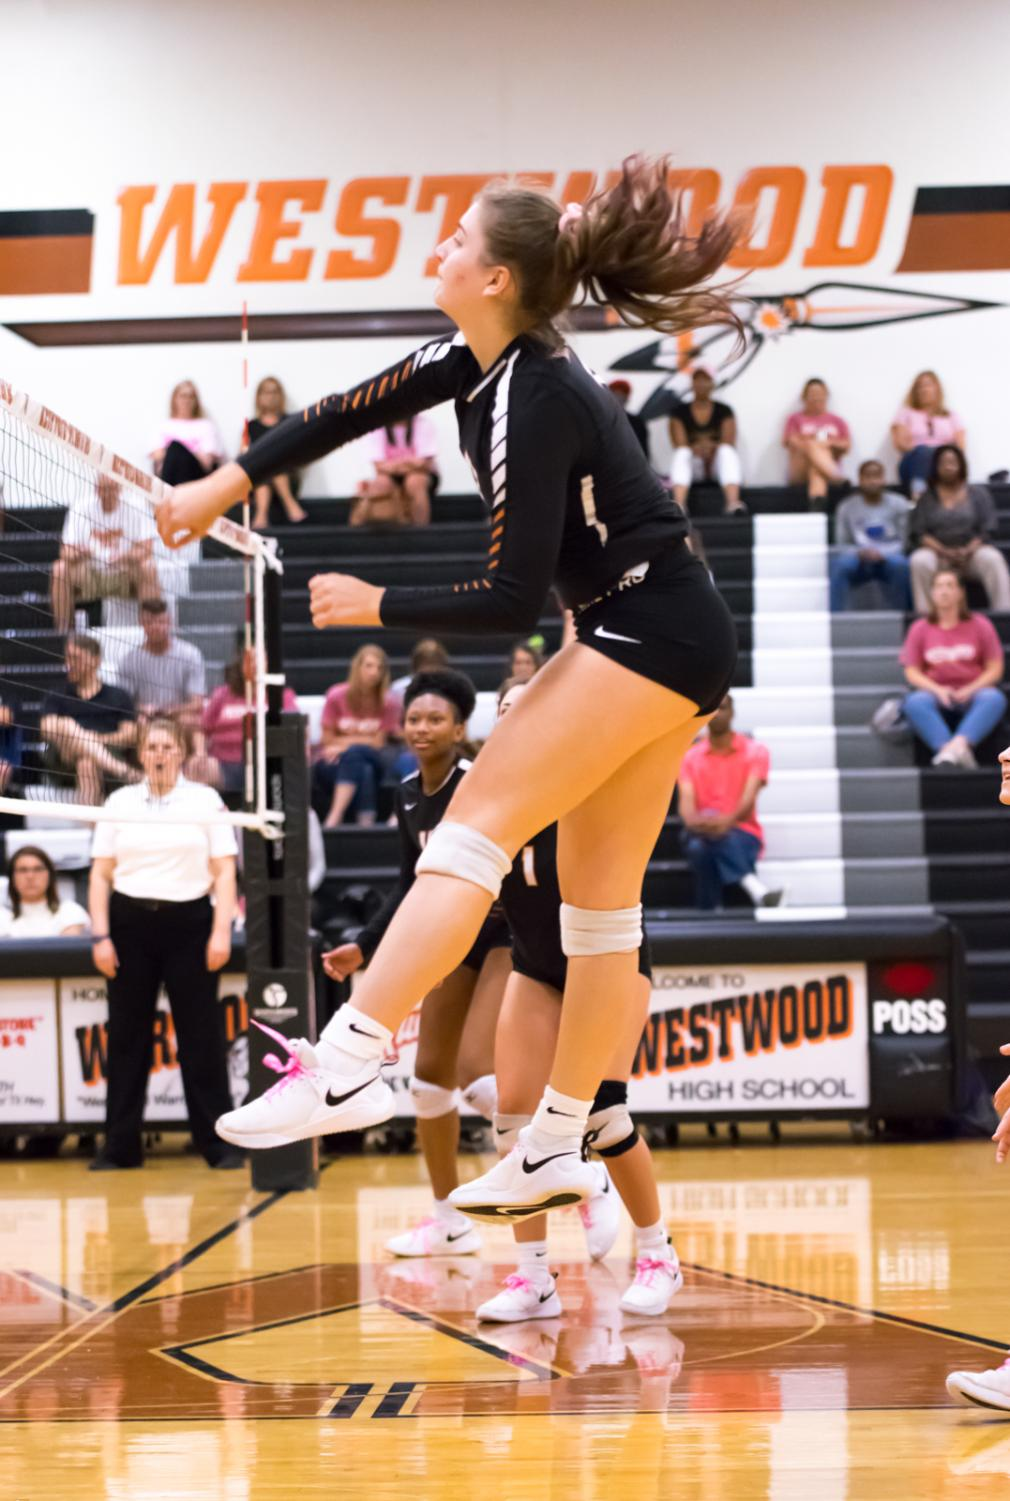 Jumping+in+the+air%2C+outside+hitter+Kenna+Williams+%2722+spikes+the+ball+over+the+net.+The+Lady+Warriors+won+the+point%2C+keeping+their+lead+over+the+Mavericks+during+the+second+set.